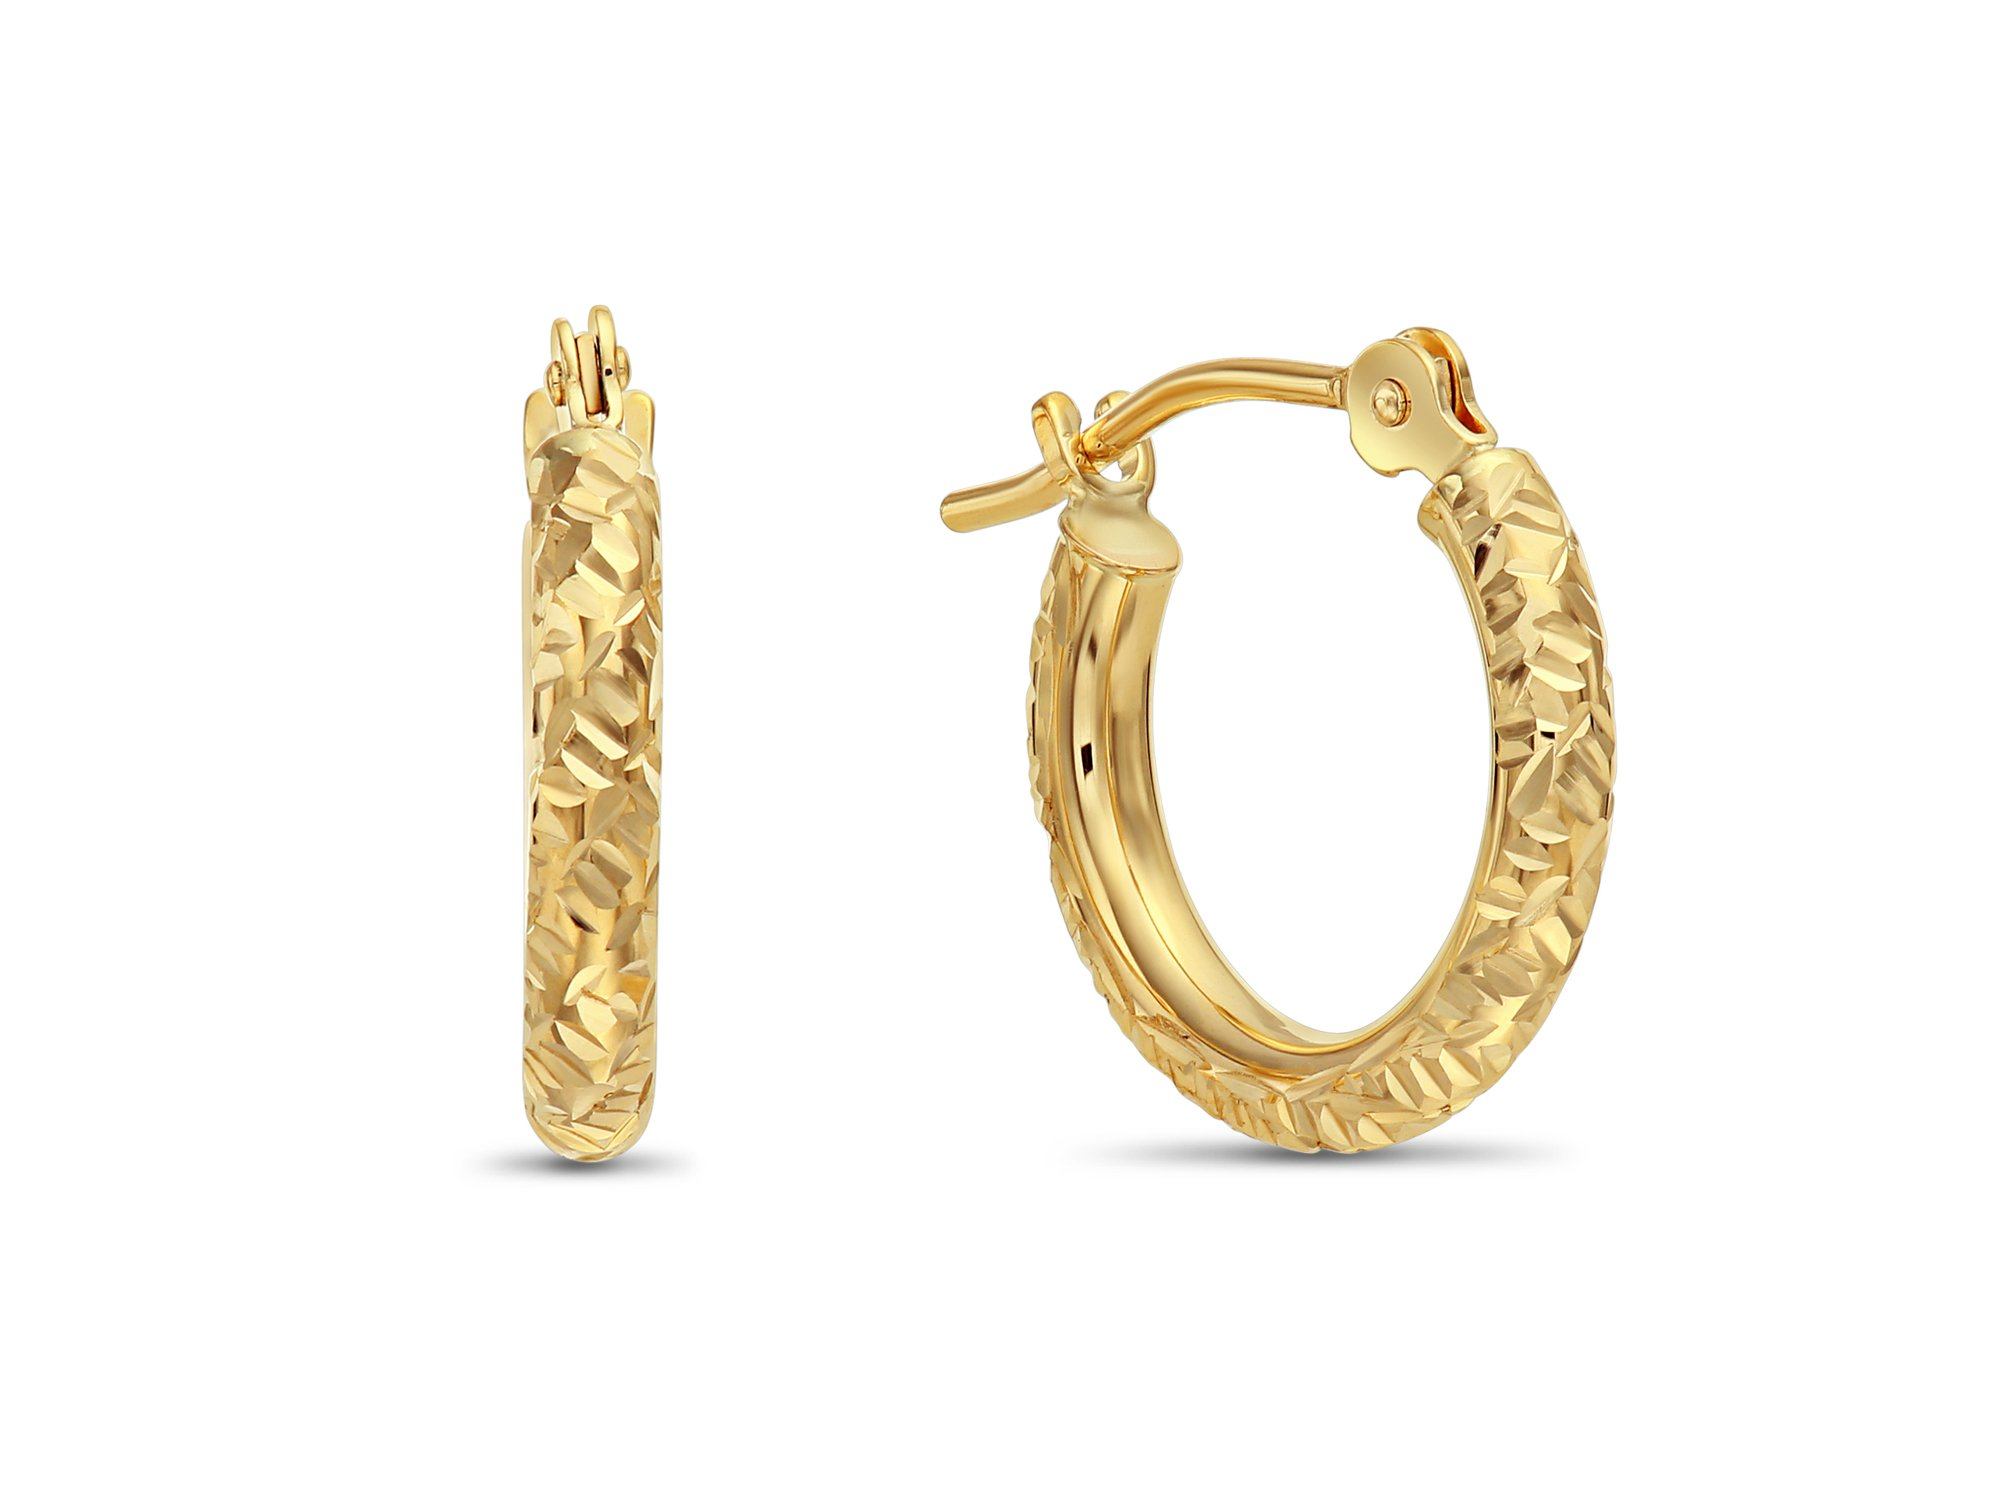 14k Yellow Gold Hand Engraved Diamond-cut Round Hoop Earrings, (0.5 inch Diameter)